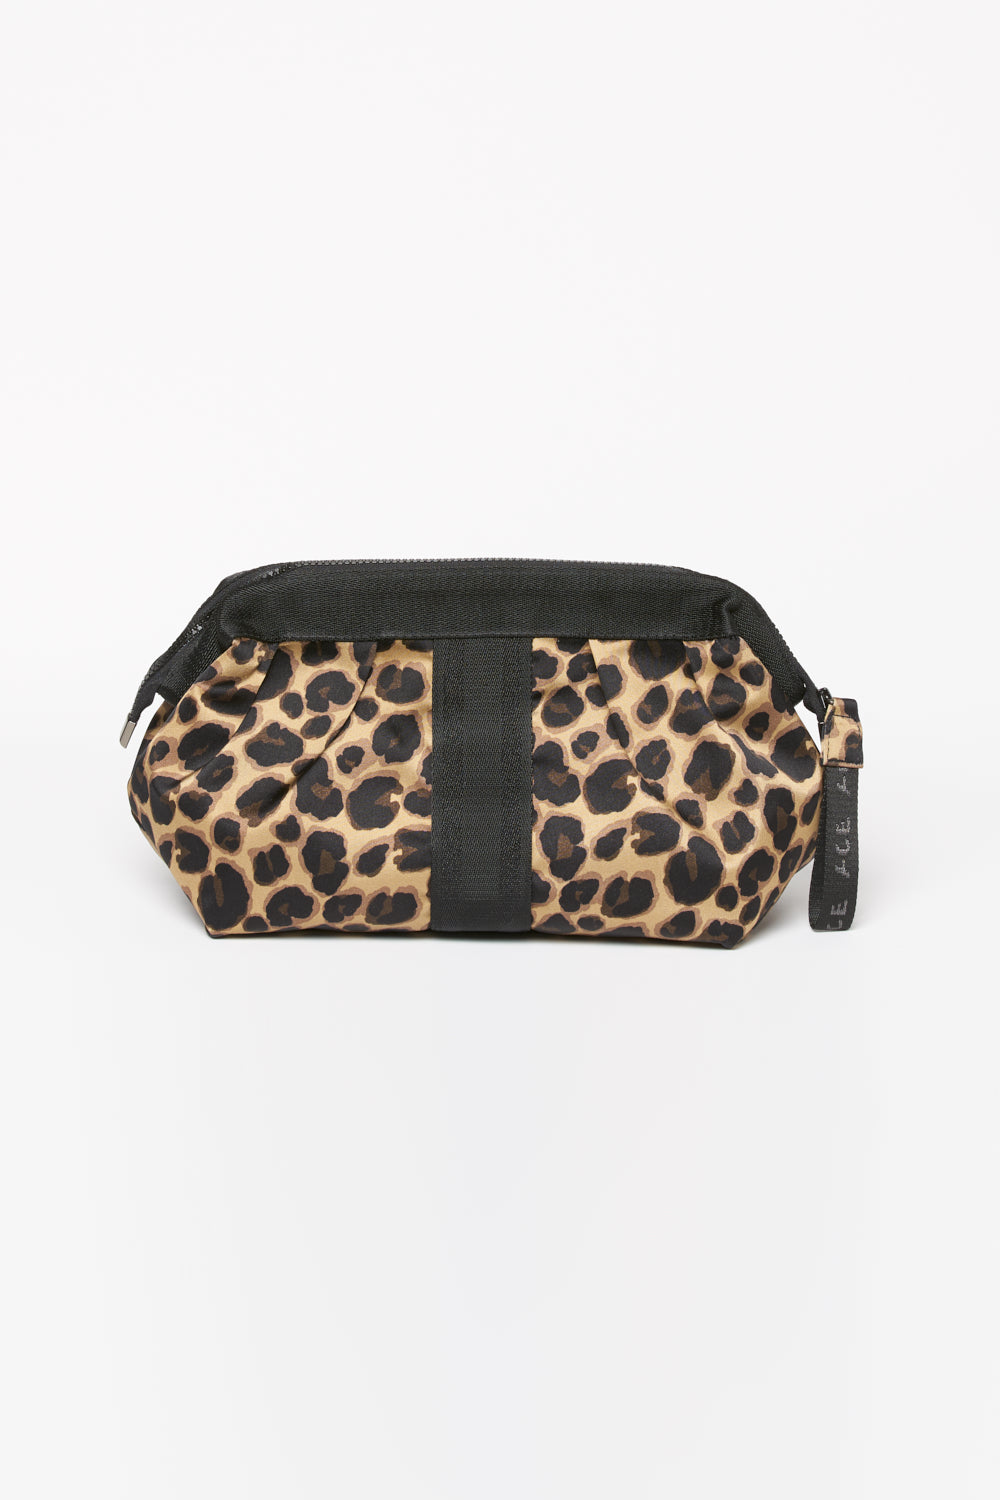 ACE best make up bag Leopard front